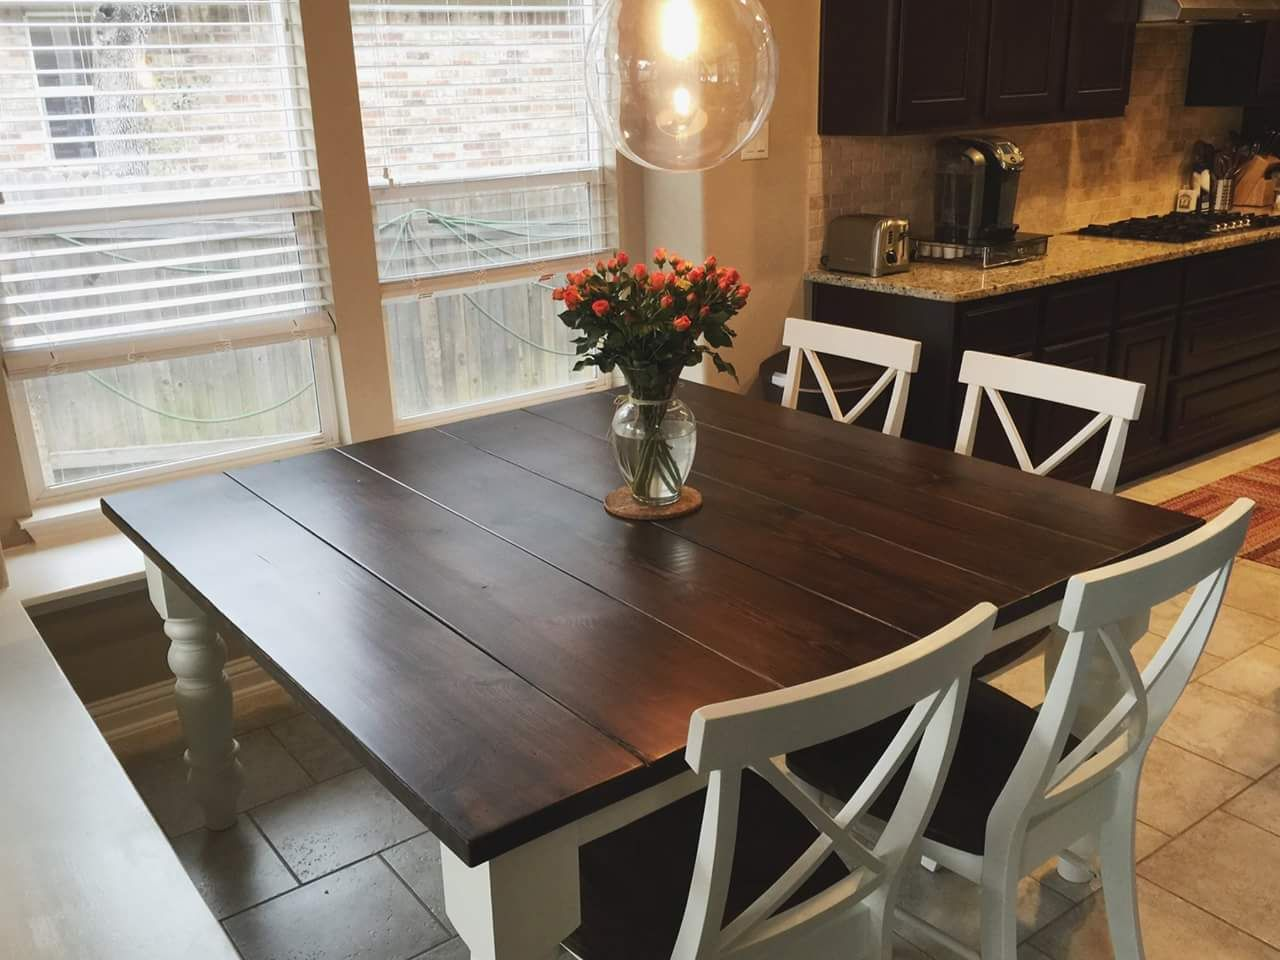 farm style kitchen table Square Baluster Table in Farmhouse Style Kitchen with X Back Dining Chairs https